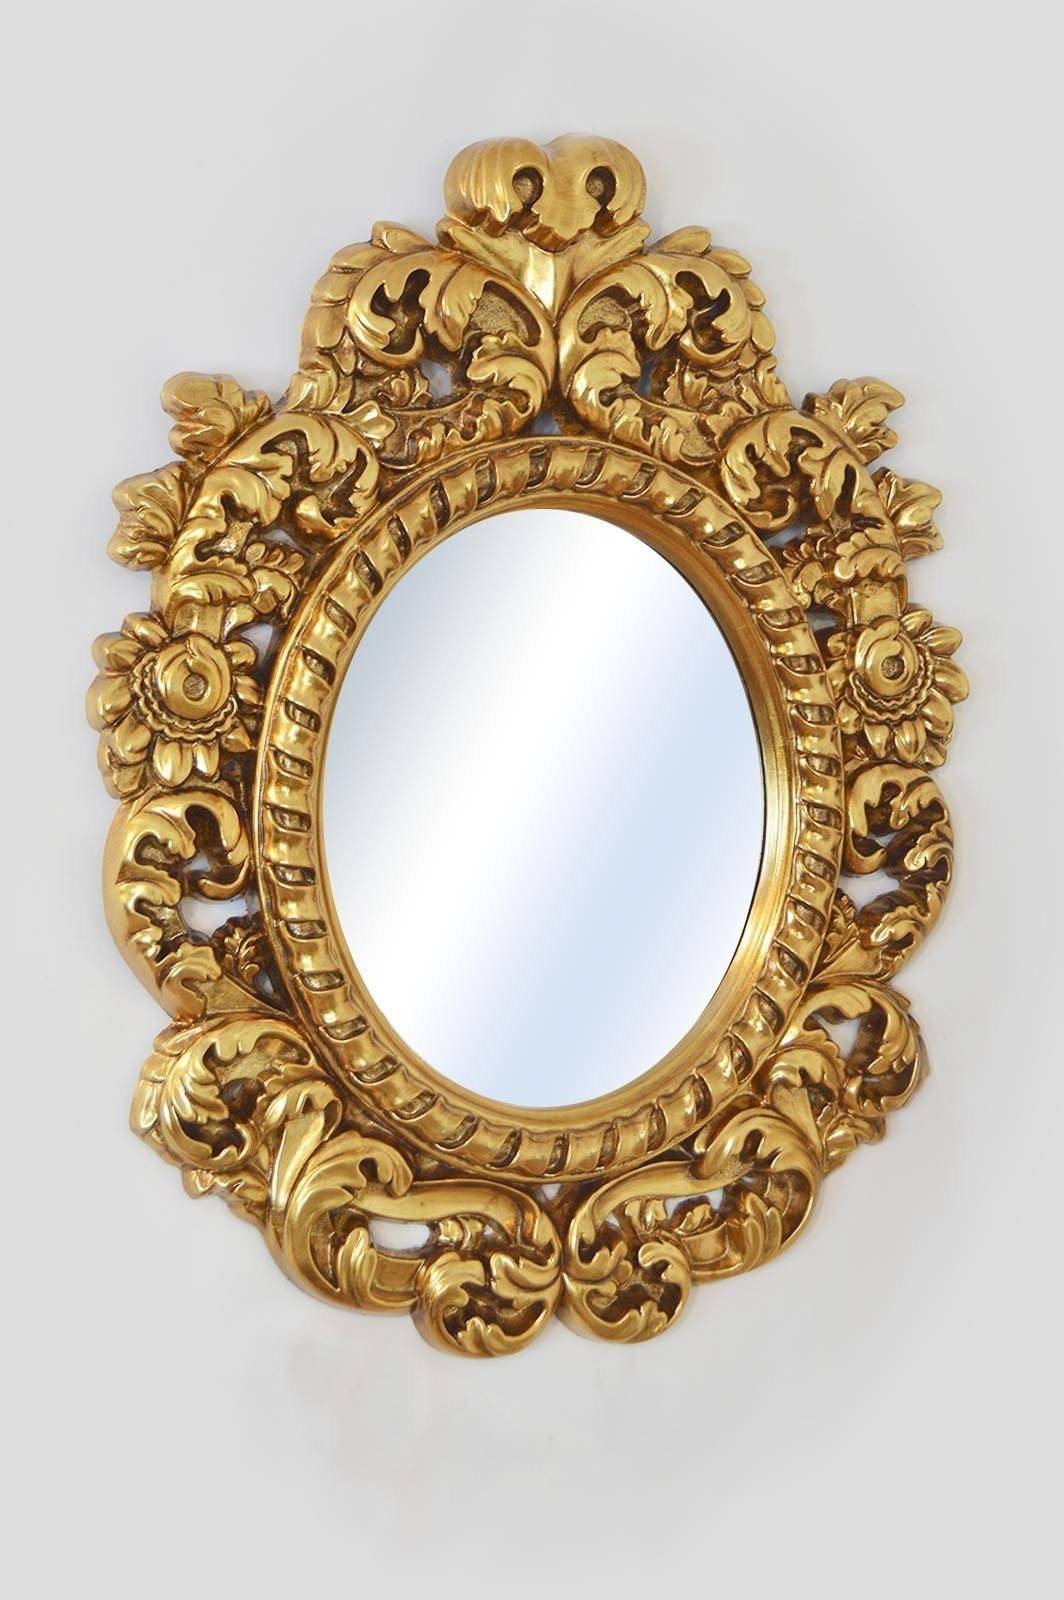 Antique Wall Mirrors Guide | Best Decor Things pertaining to Expensive Mirrors (Image 6 of 25)